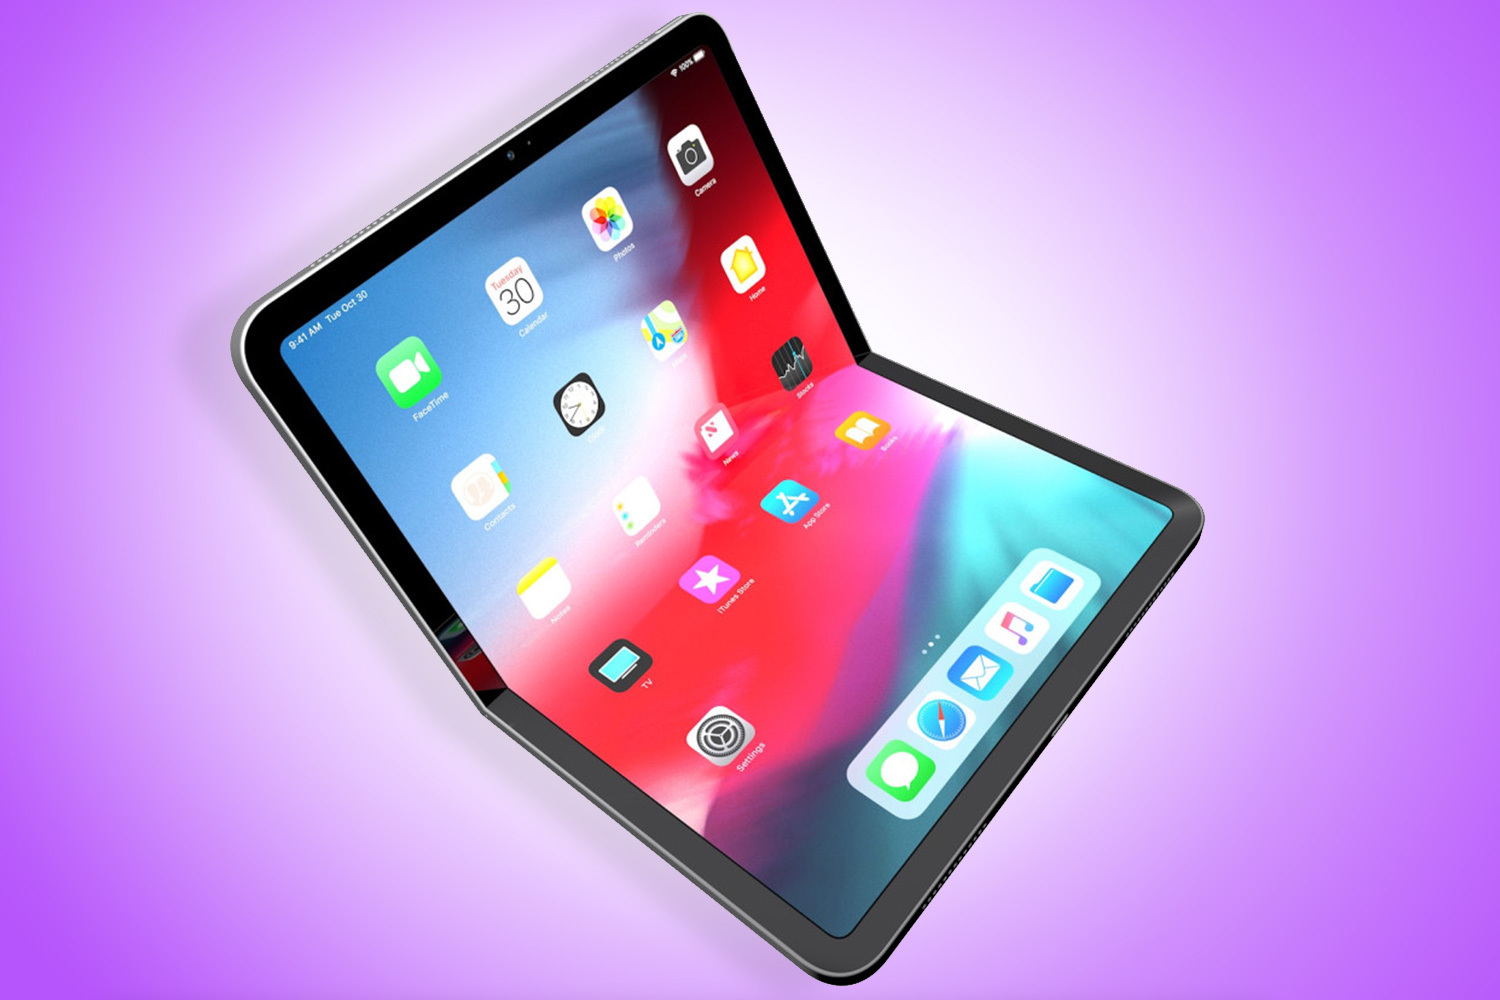 The foldable iPhone